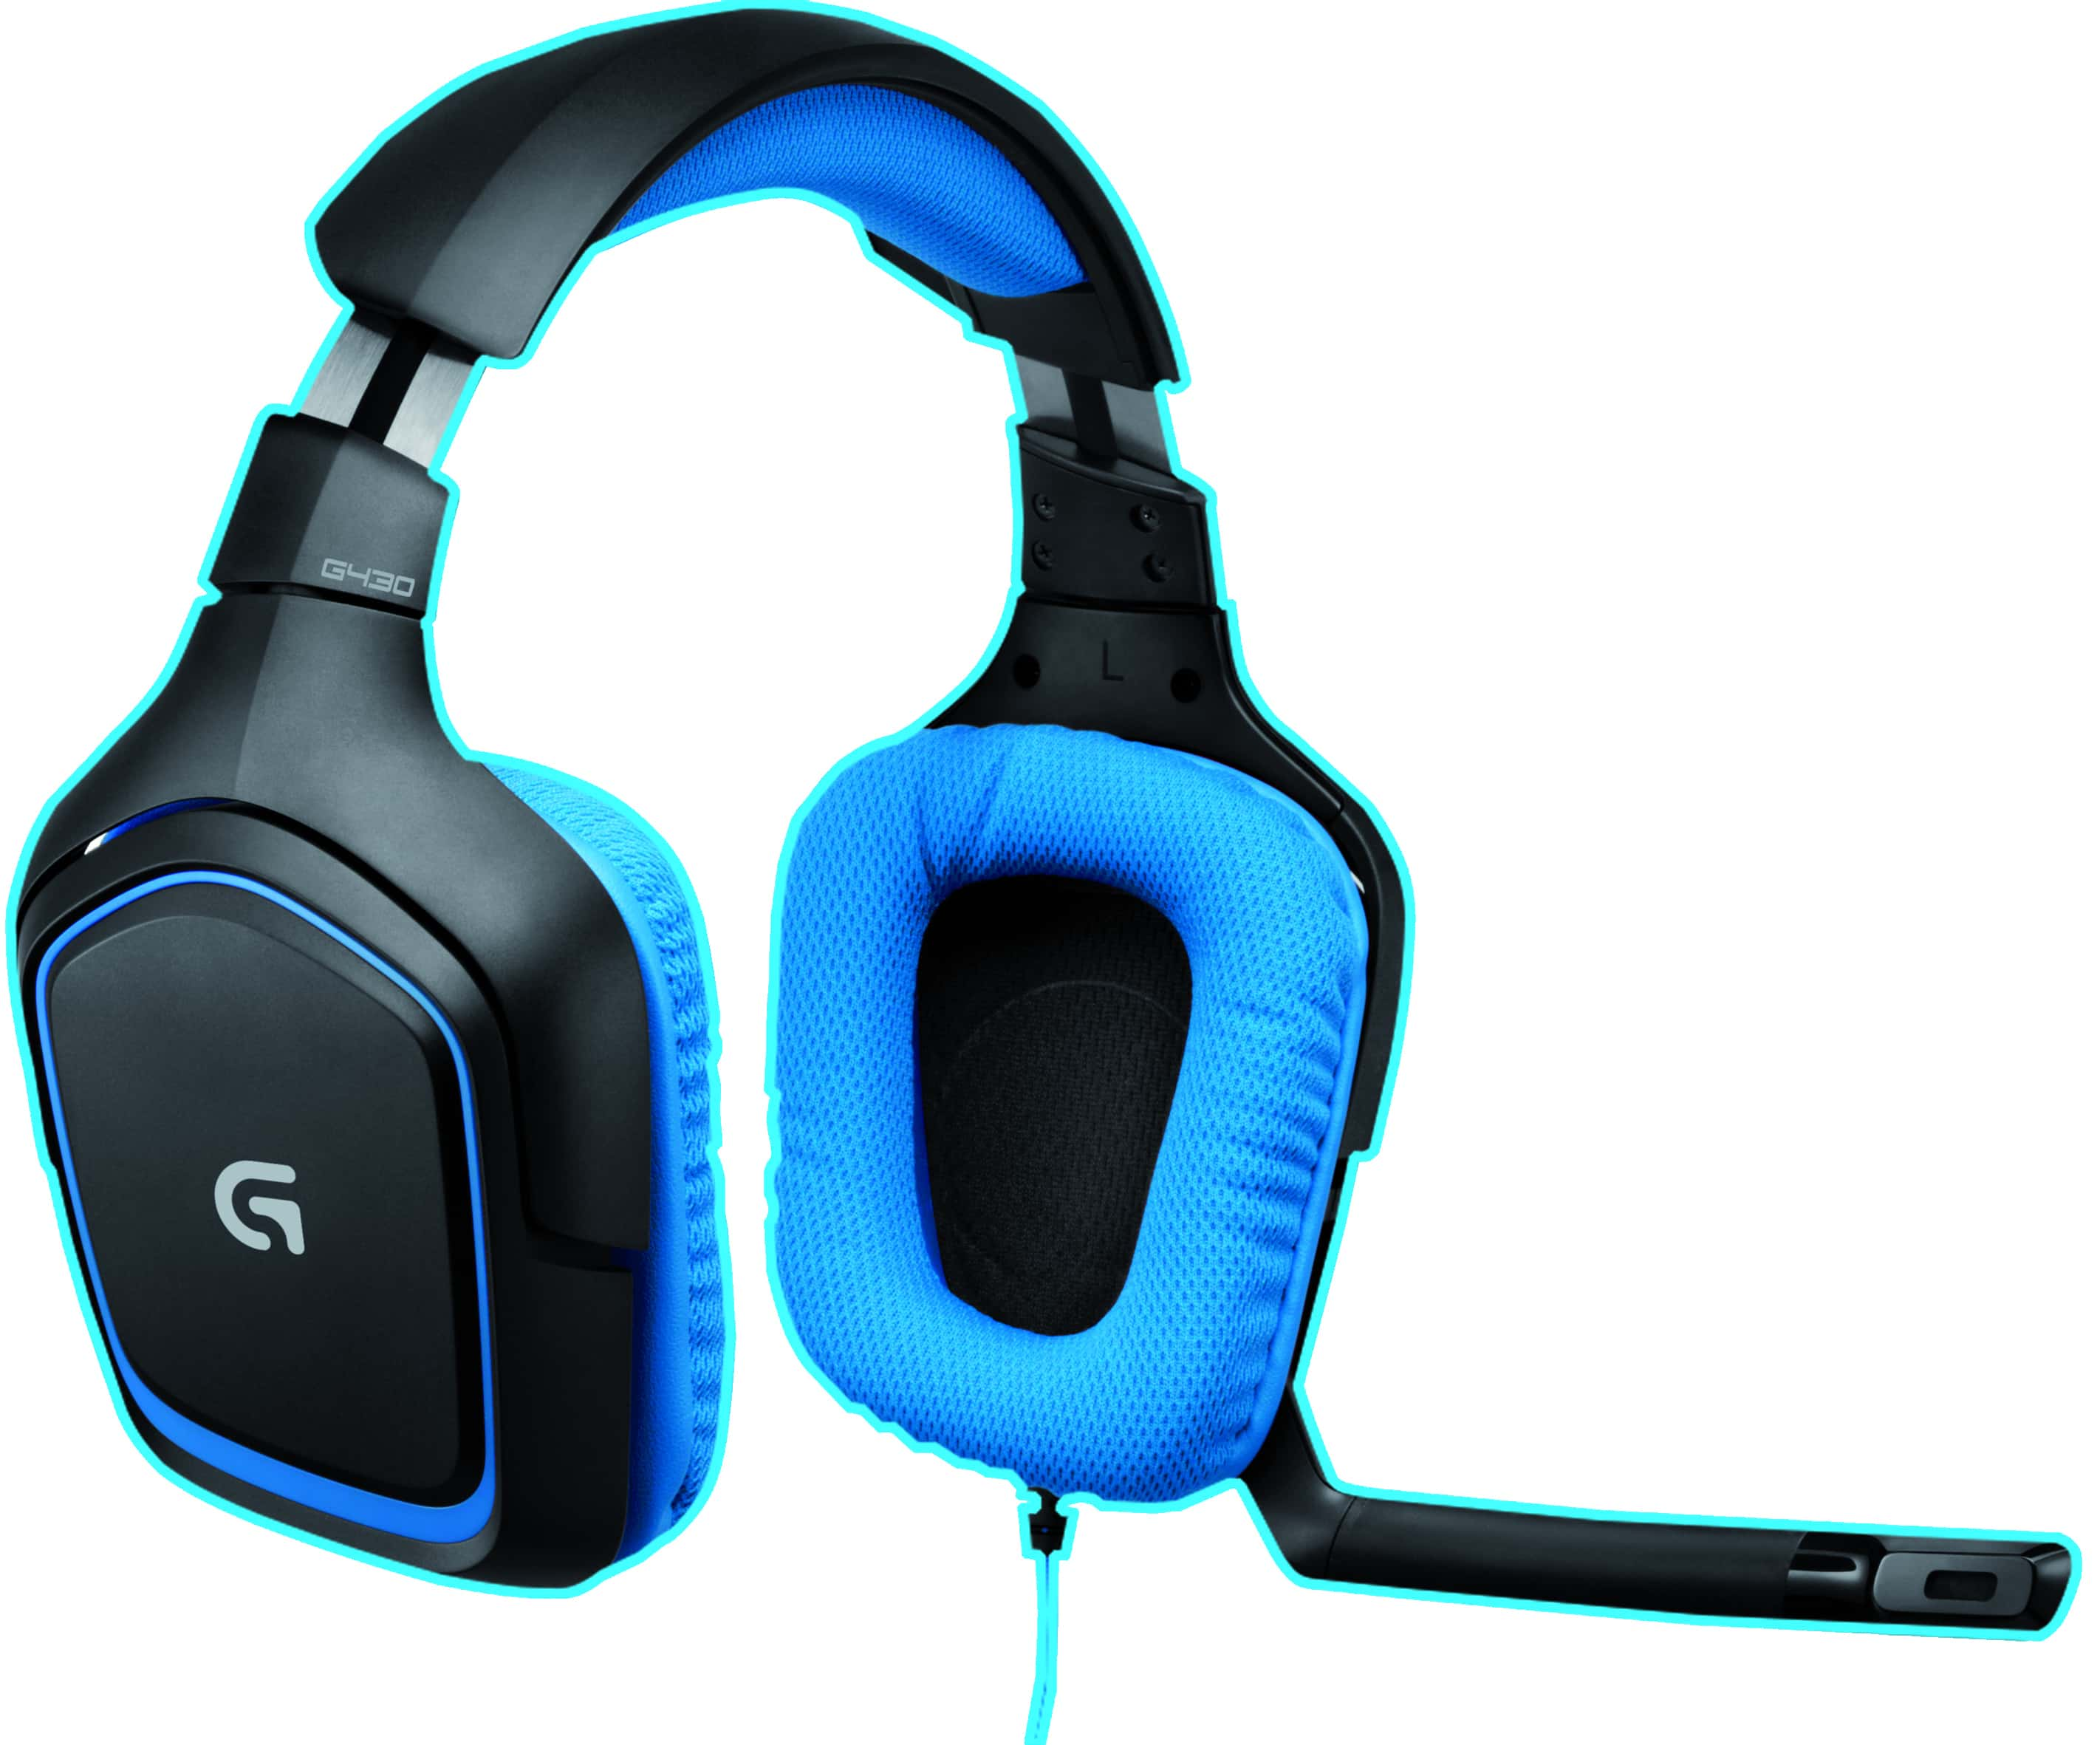 Logitech Gaming-Set (G502 Gaming-Mouse, G430 Gaming-Headset, G240 Mouse-Pad) für 119,00 Euro